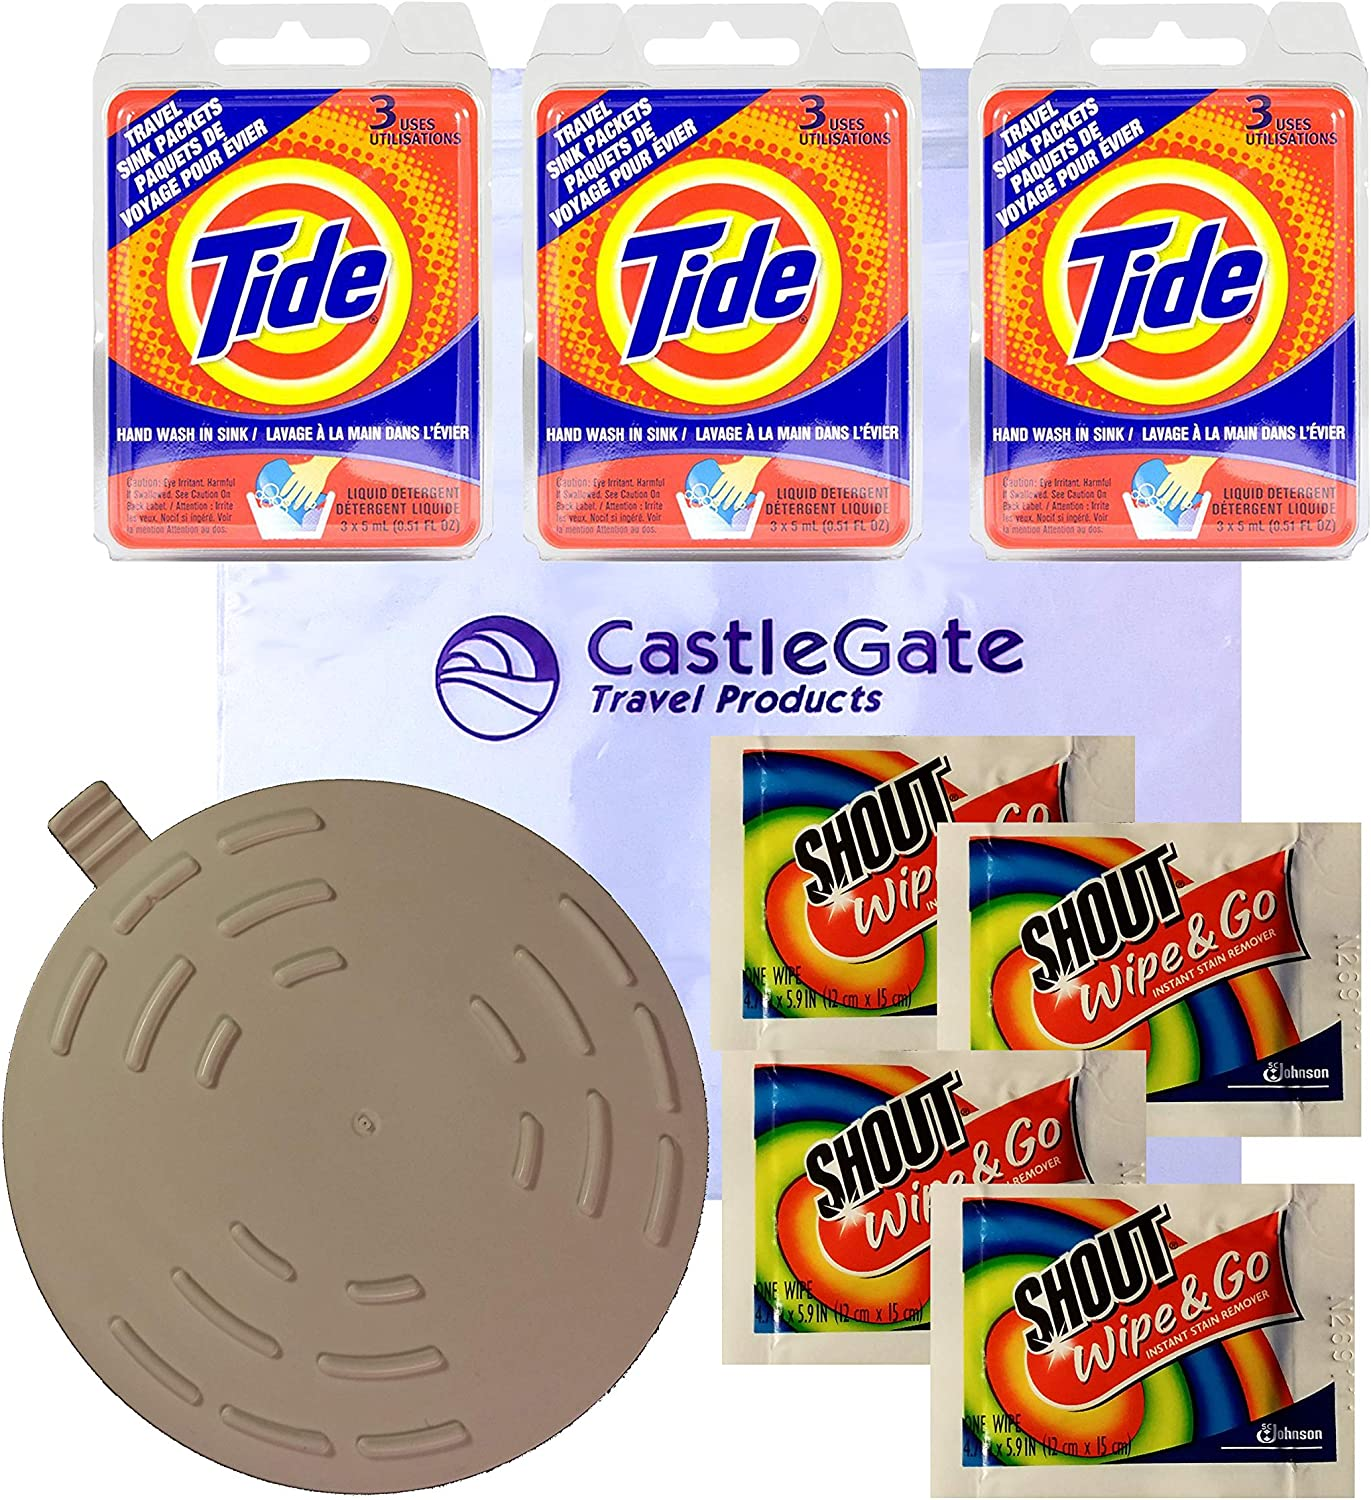 Travel Laundry Kit with Tide Sink Packs Laundry Detergent, Shout Wipes and Drain Stopper